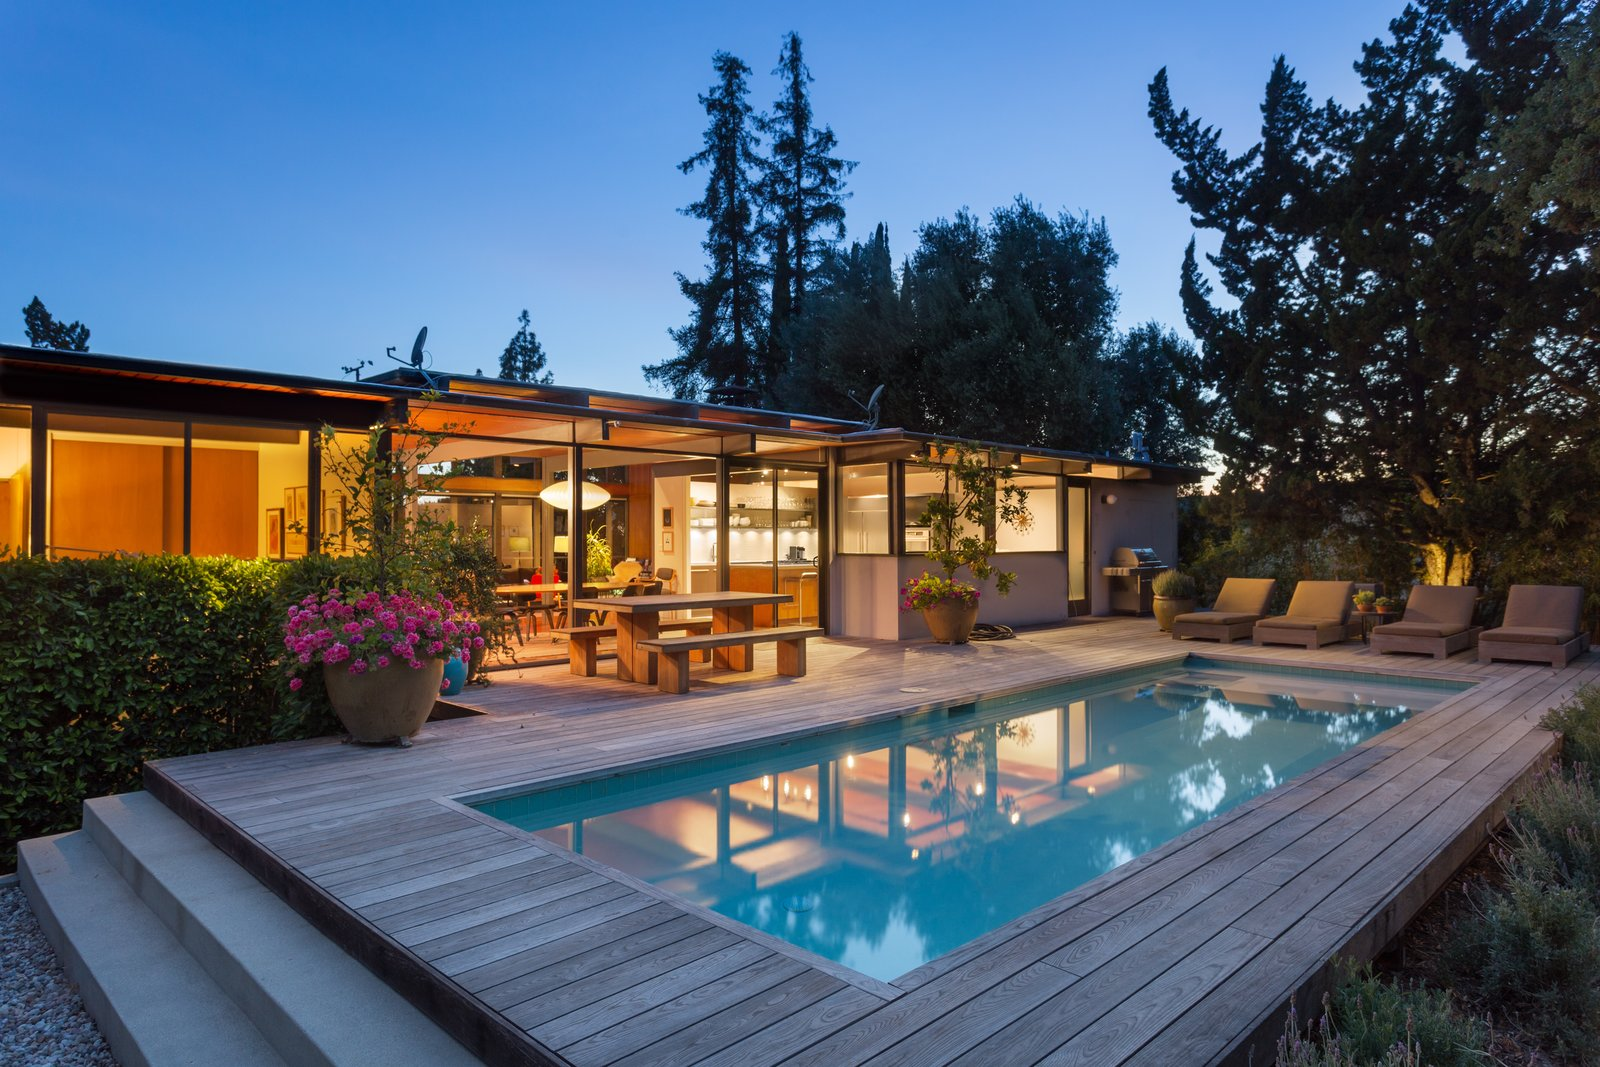 Photo 12 of 12 in This Post-and-Beam in Pasadena Offers Classic California Living For $1.9M